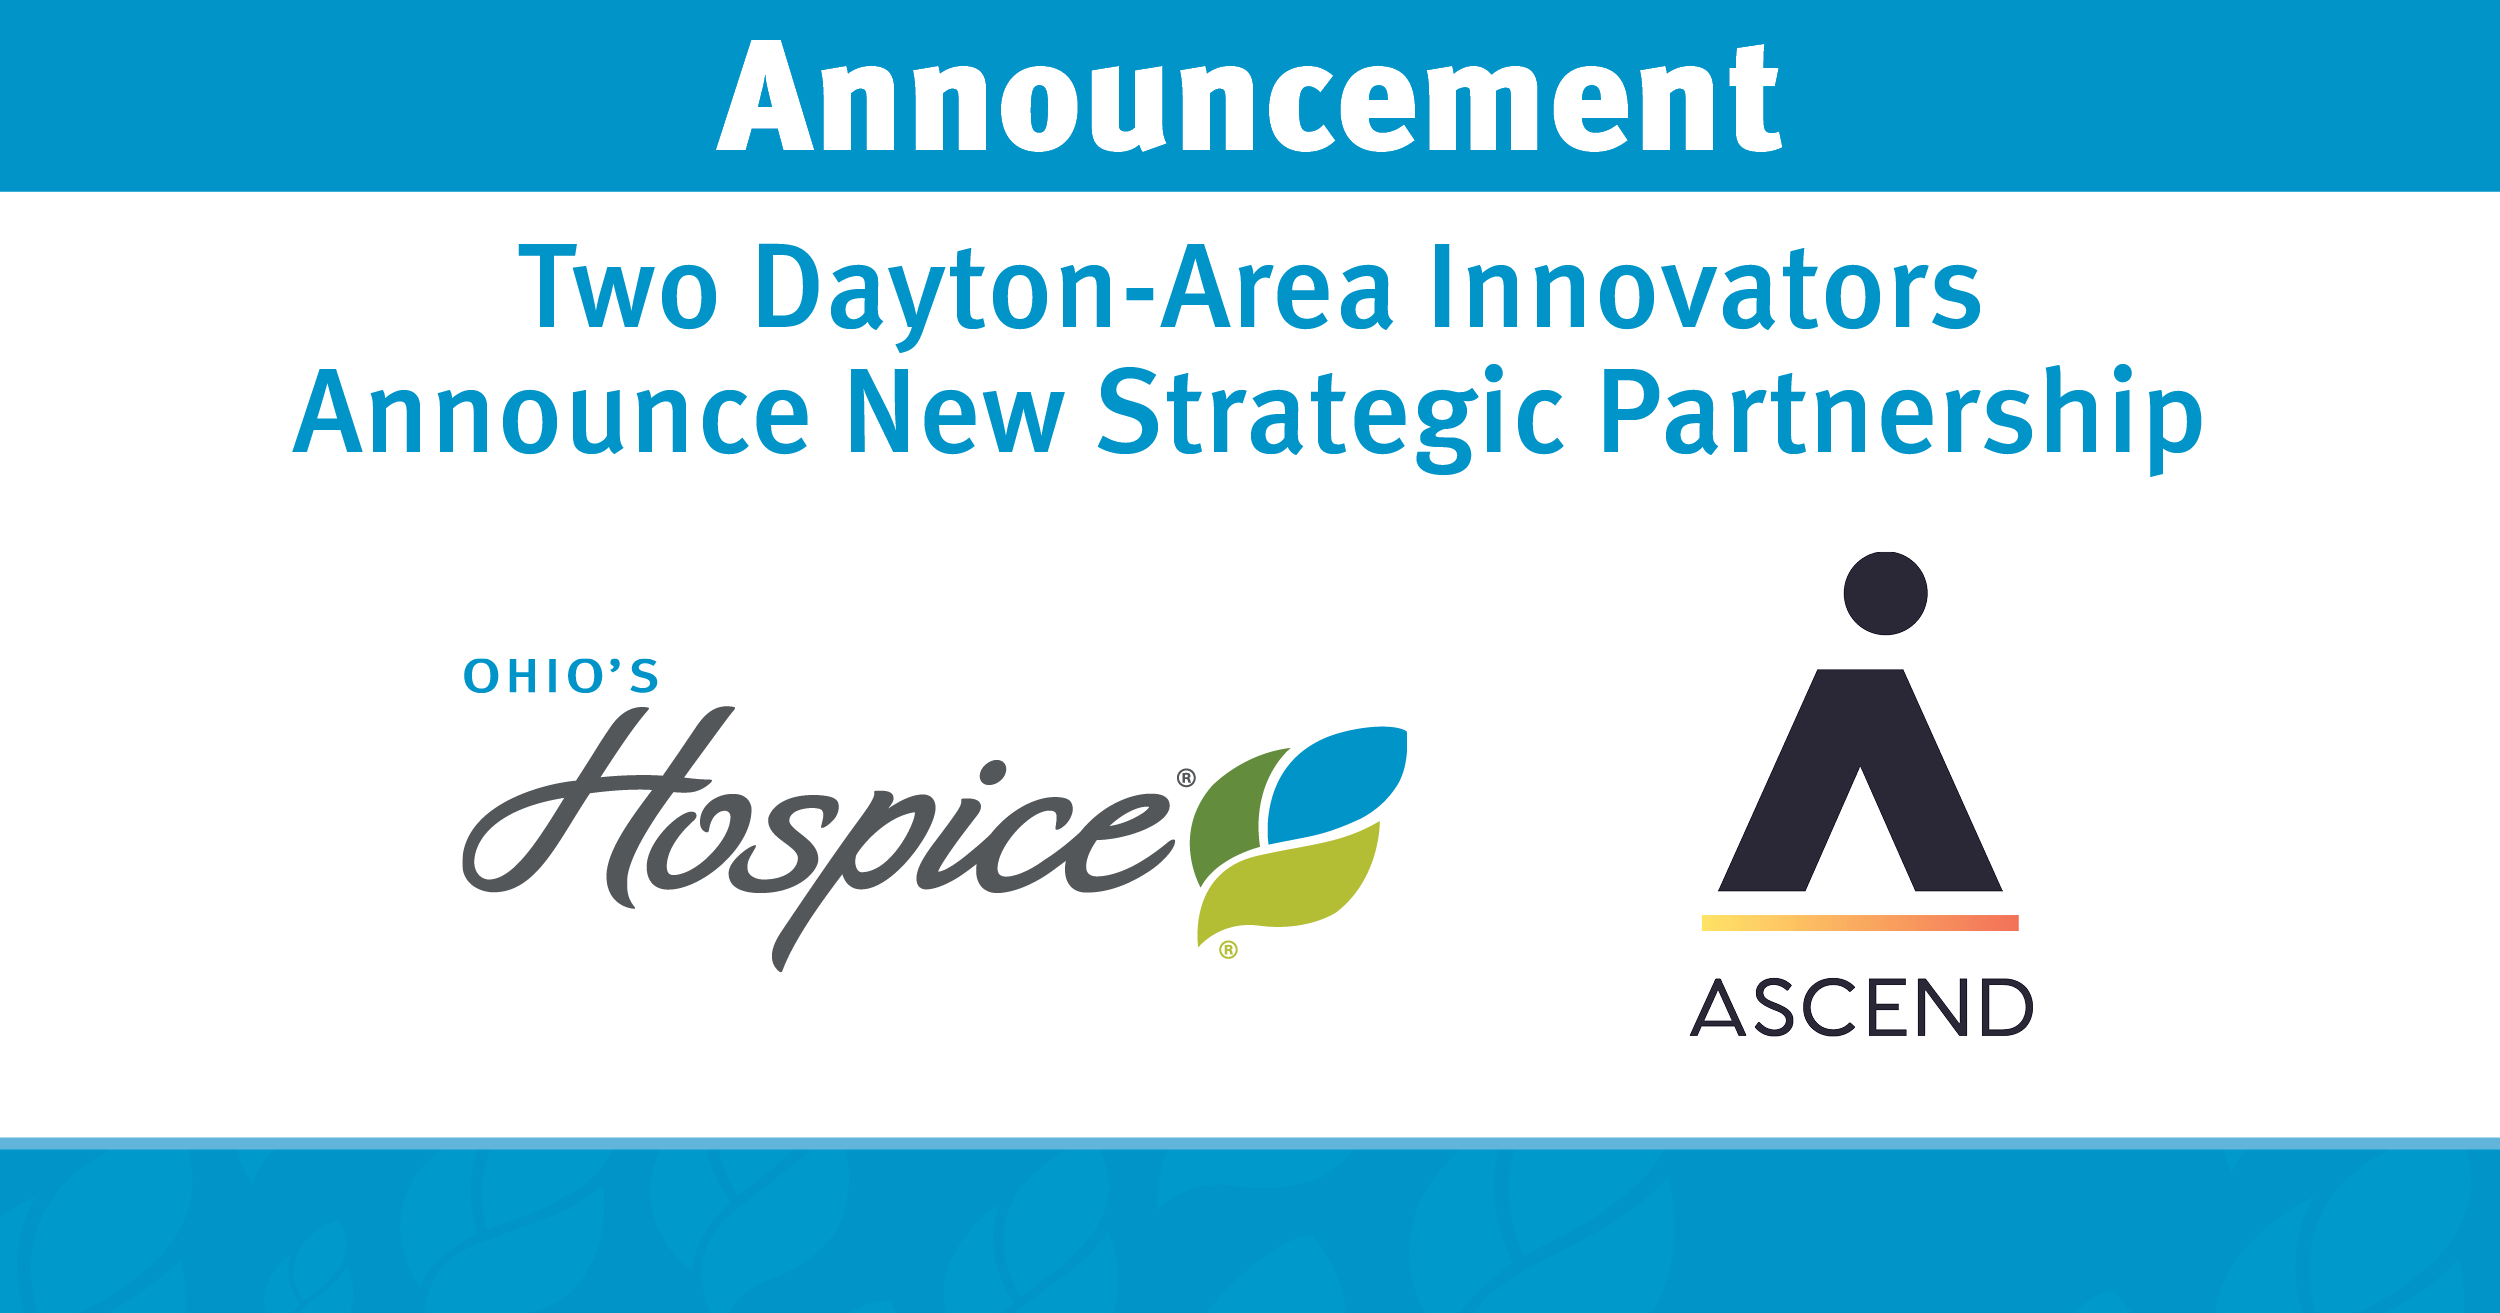 Ohio's Hospice And Ascend Innovations Poised To Deliver Leading-Edge Technology & Hospice And Palliative Care Organizations